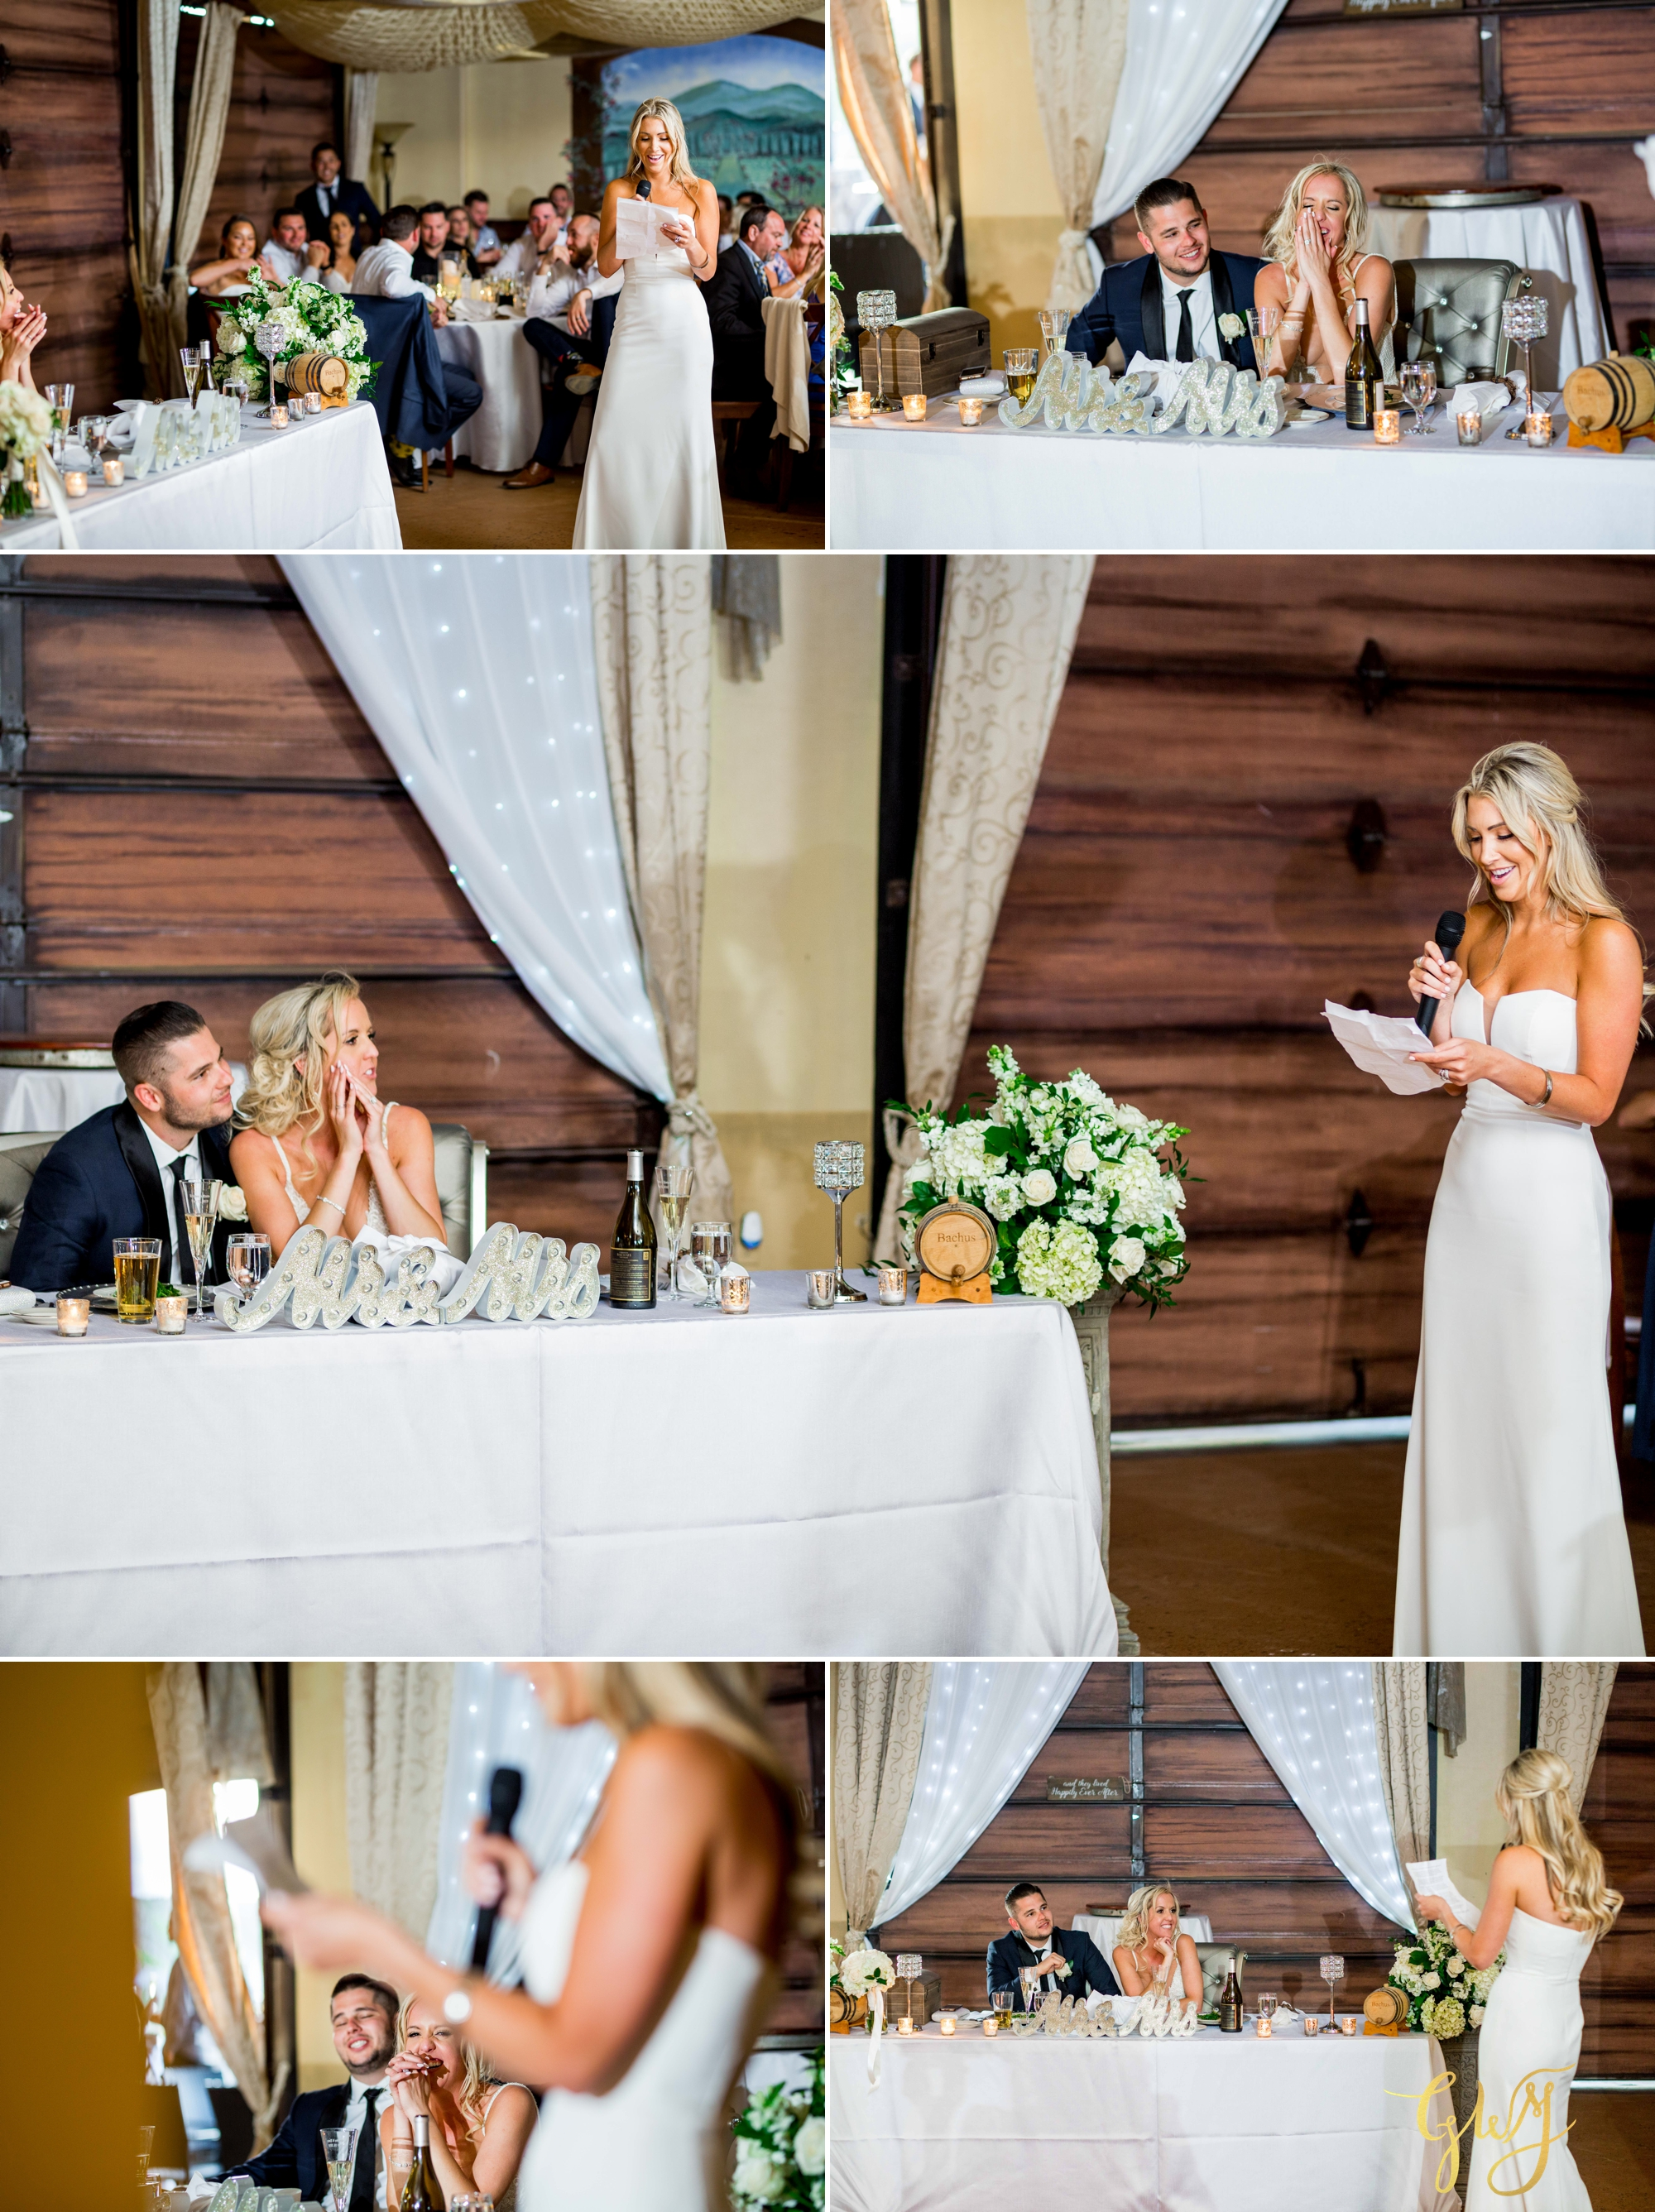 Kristen + Krsto's Romantic Temecula Winery Spring Wedding by Glass Woods Media 50.jpg